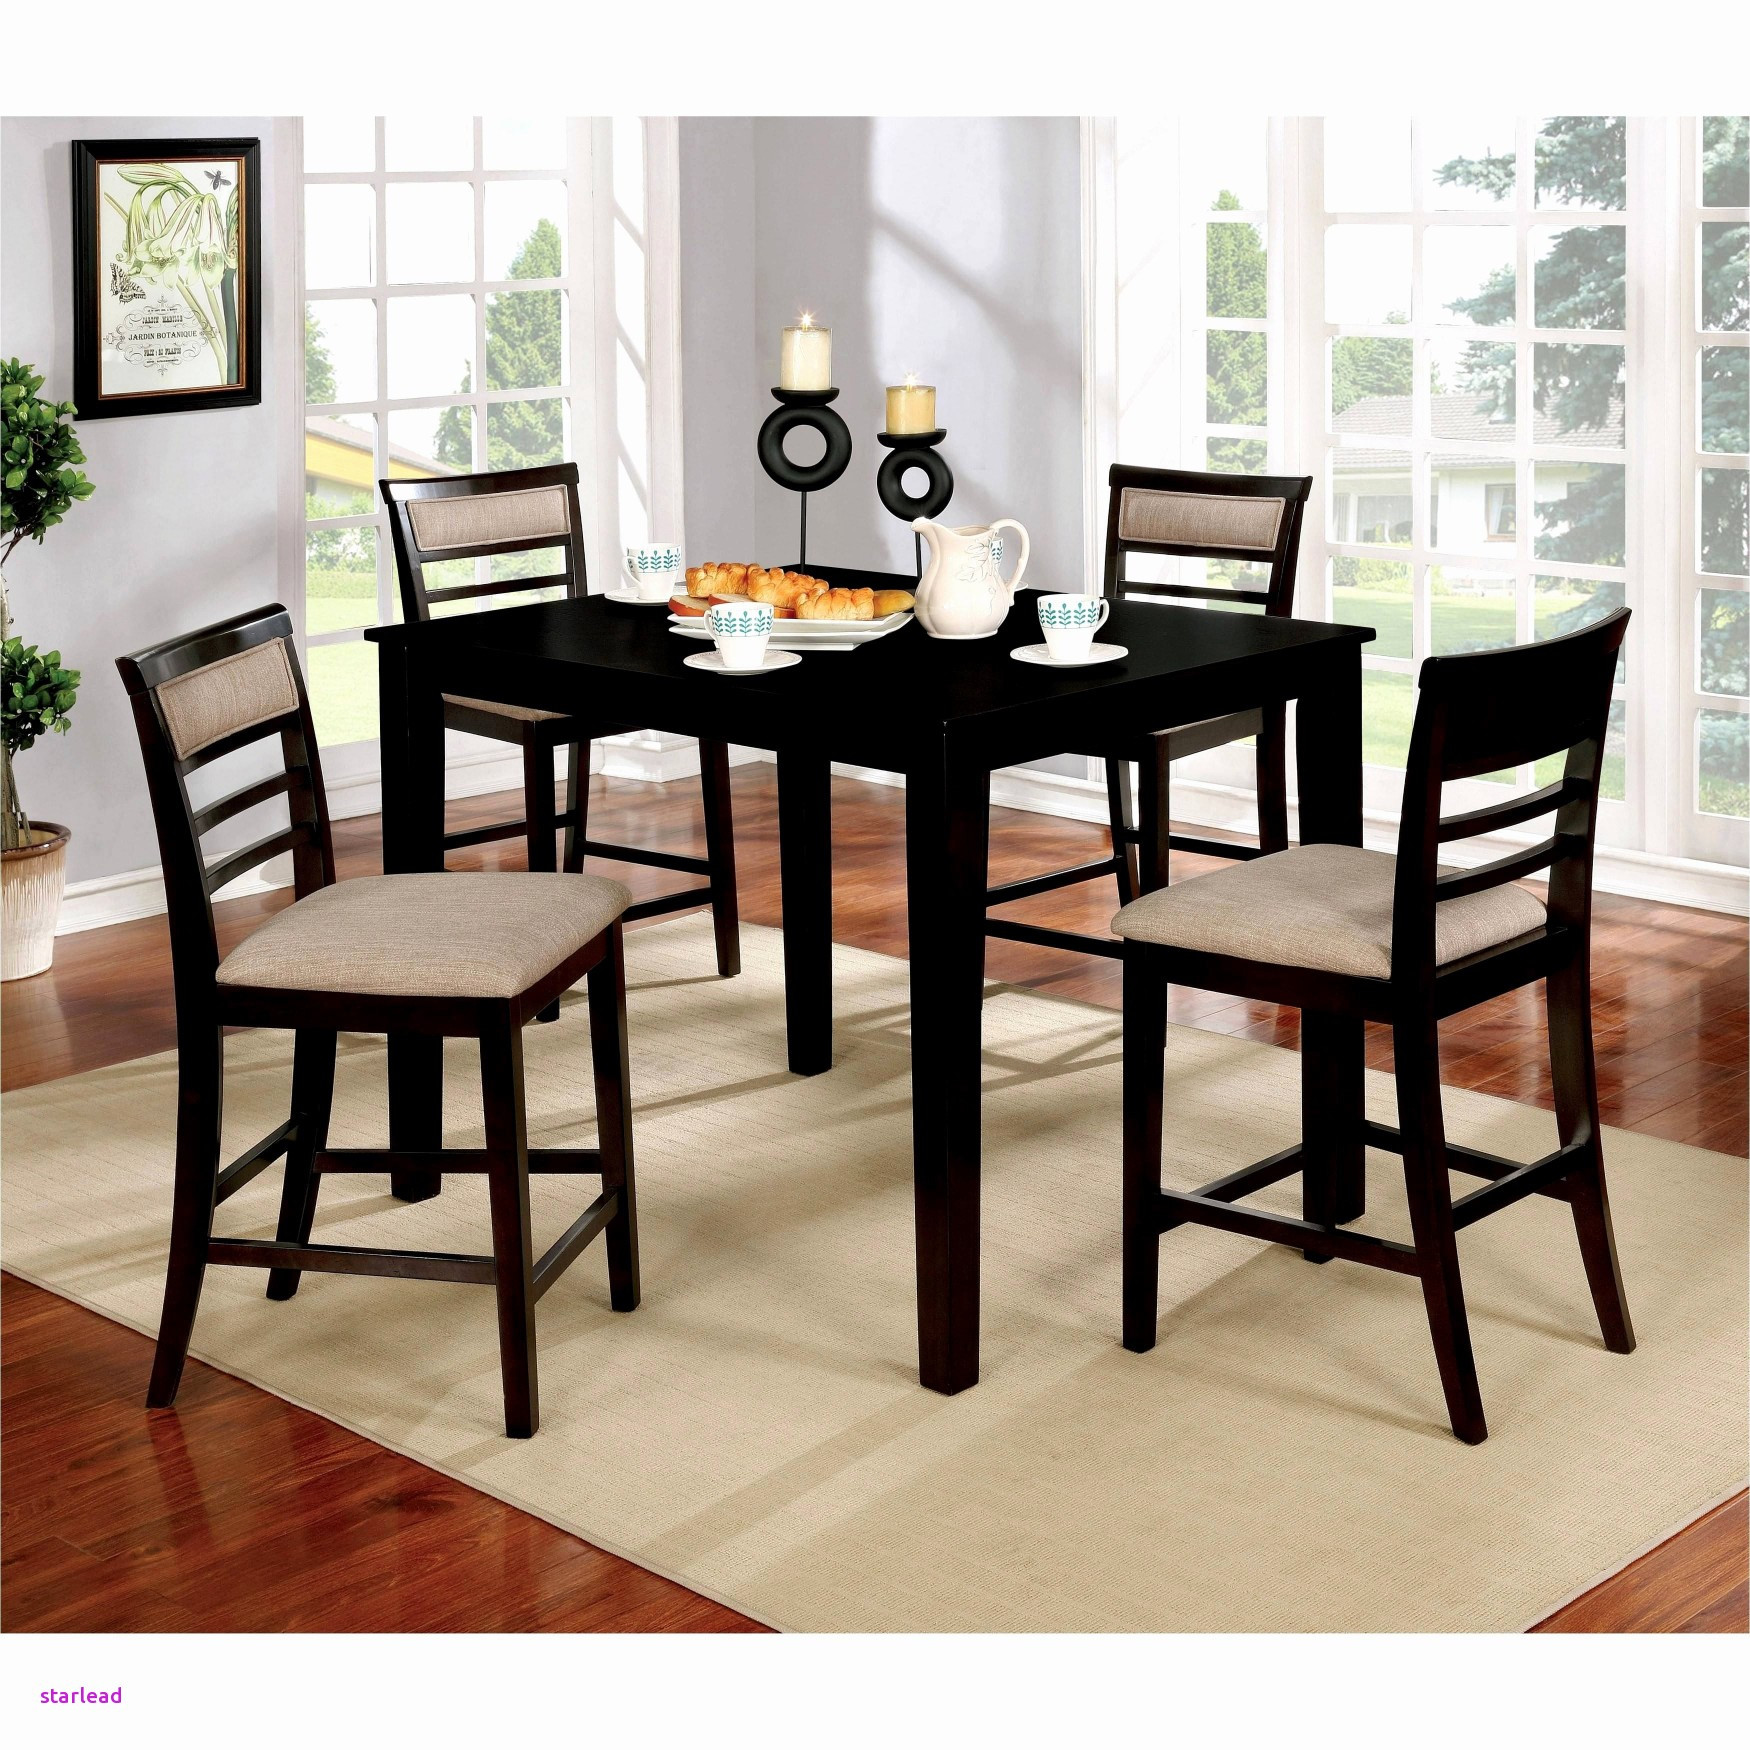 dark hardwood floors for sale of elegant dining room table and chairs for sale or latest designs with astonishing dining room table and chairs for sale at 23 best dark wood dining table collection